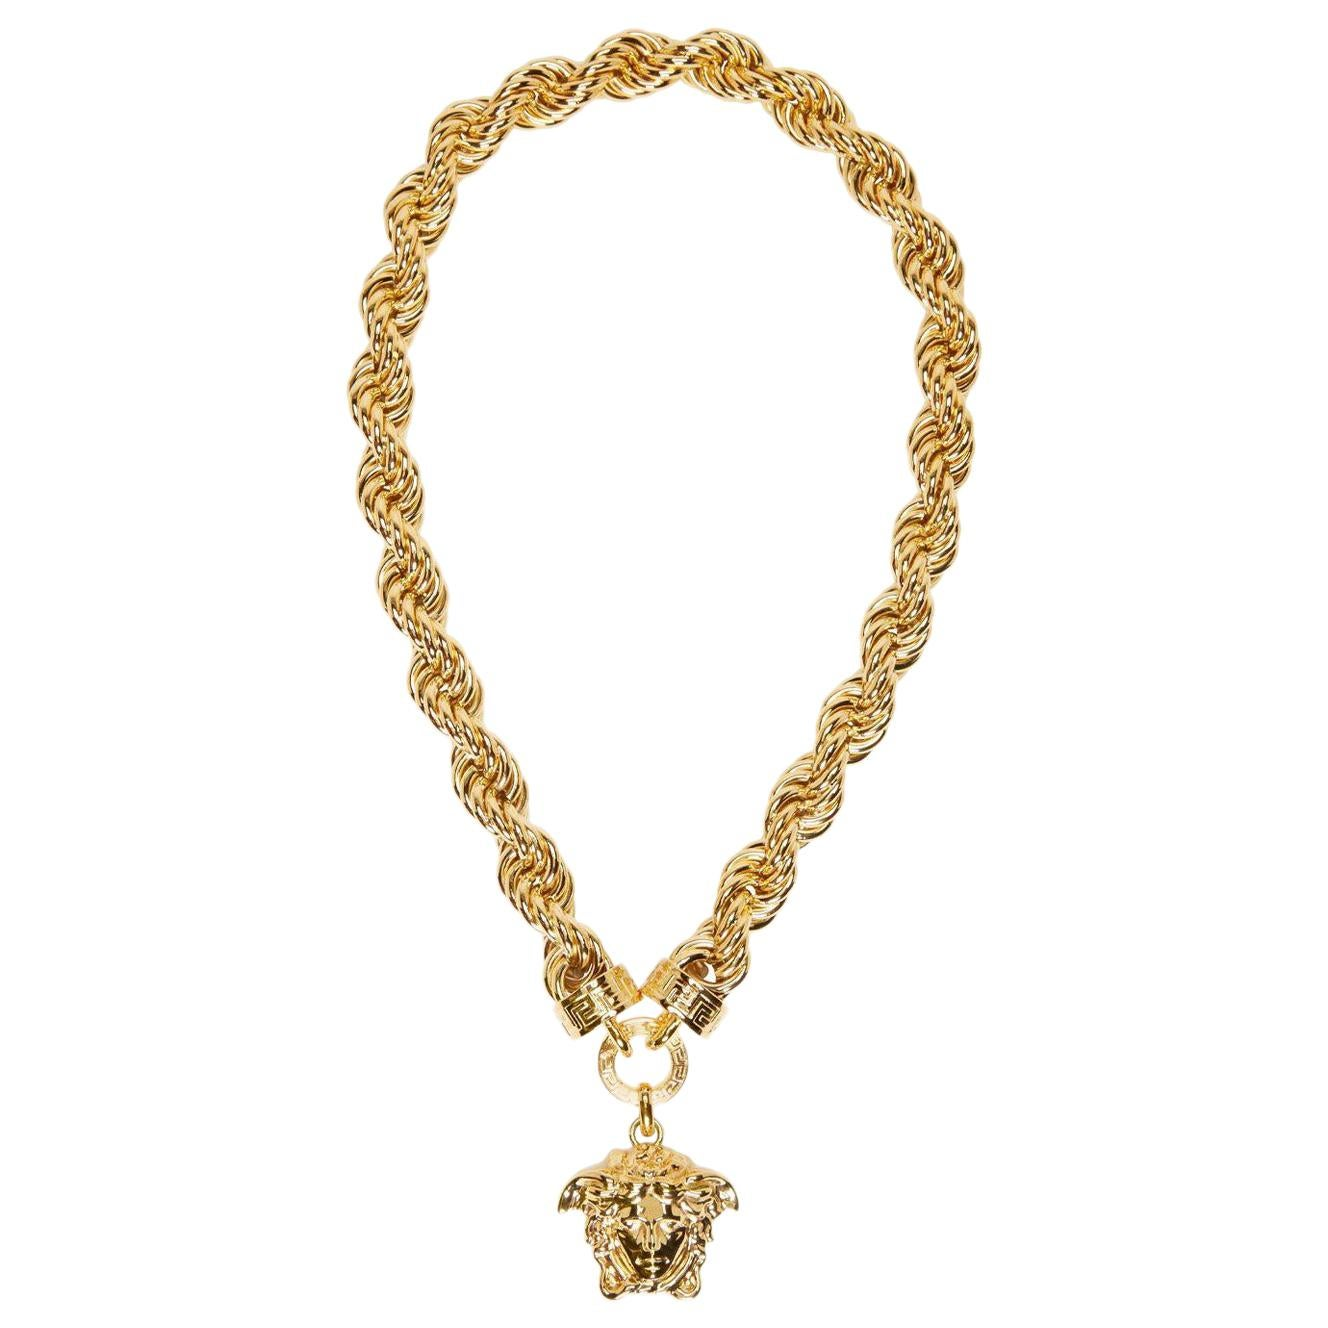 3ffbee3157 Gold Chain Necklaces - 99 For Sale at 1stdibs